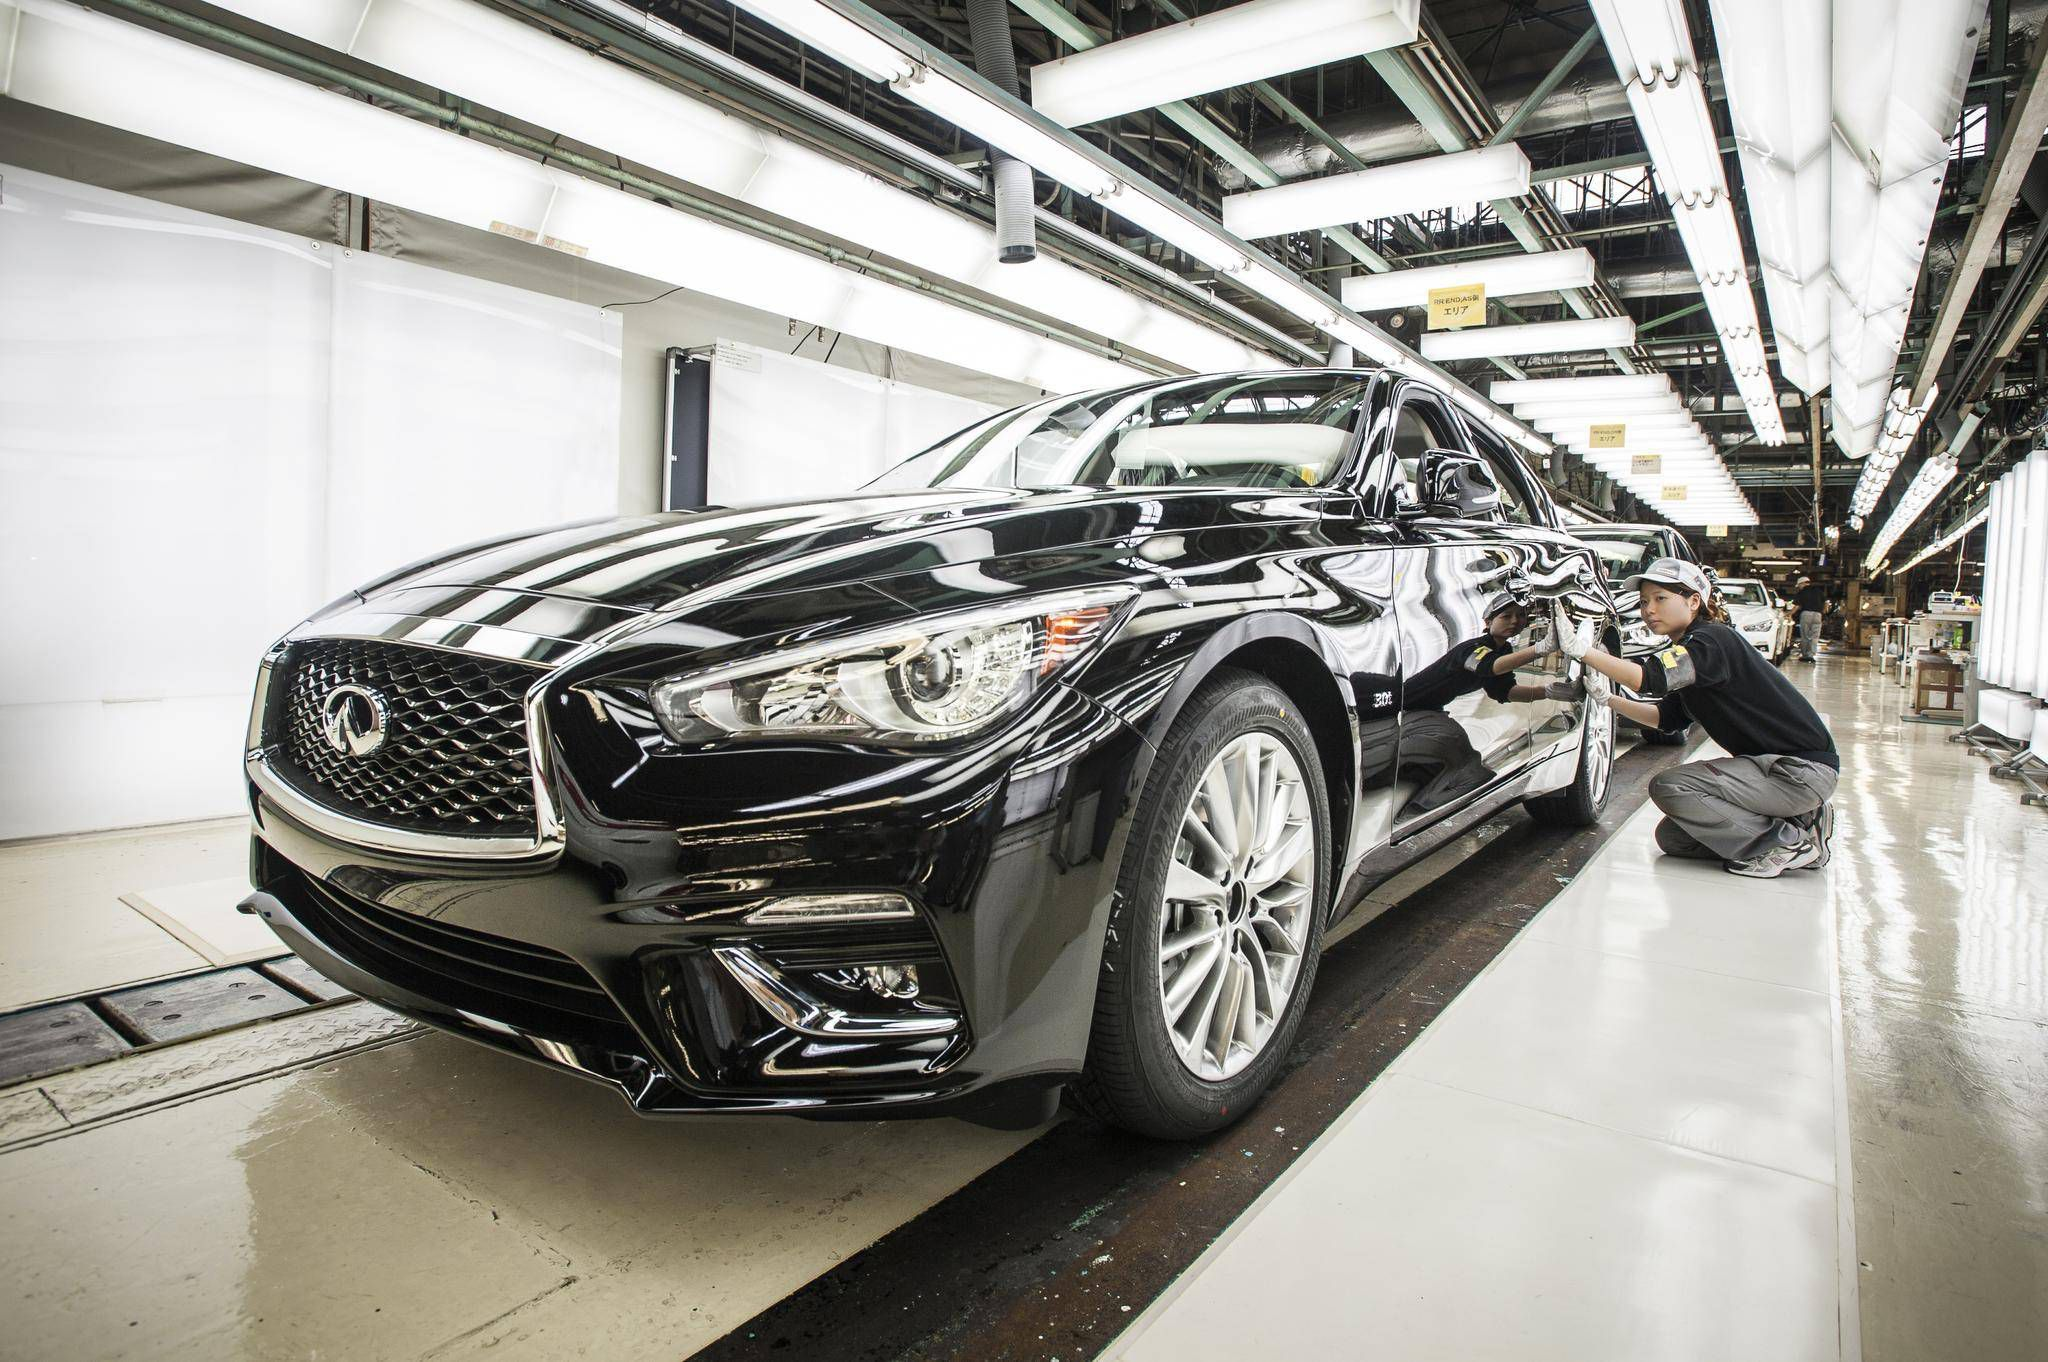 Auto makers pete for growing affordable luxury market The Globe